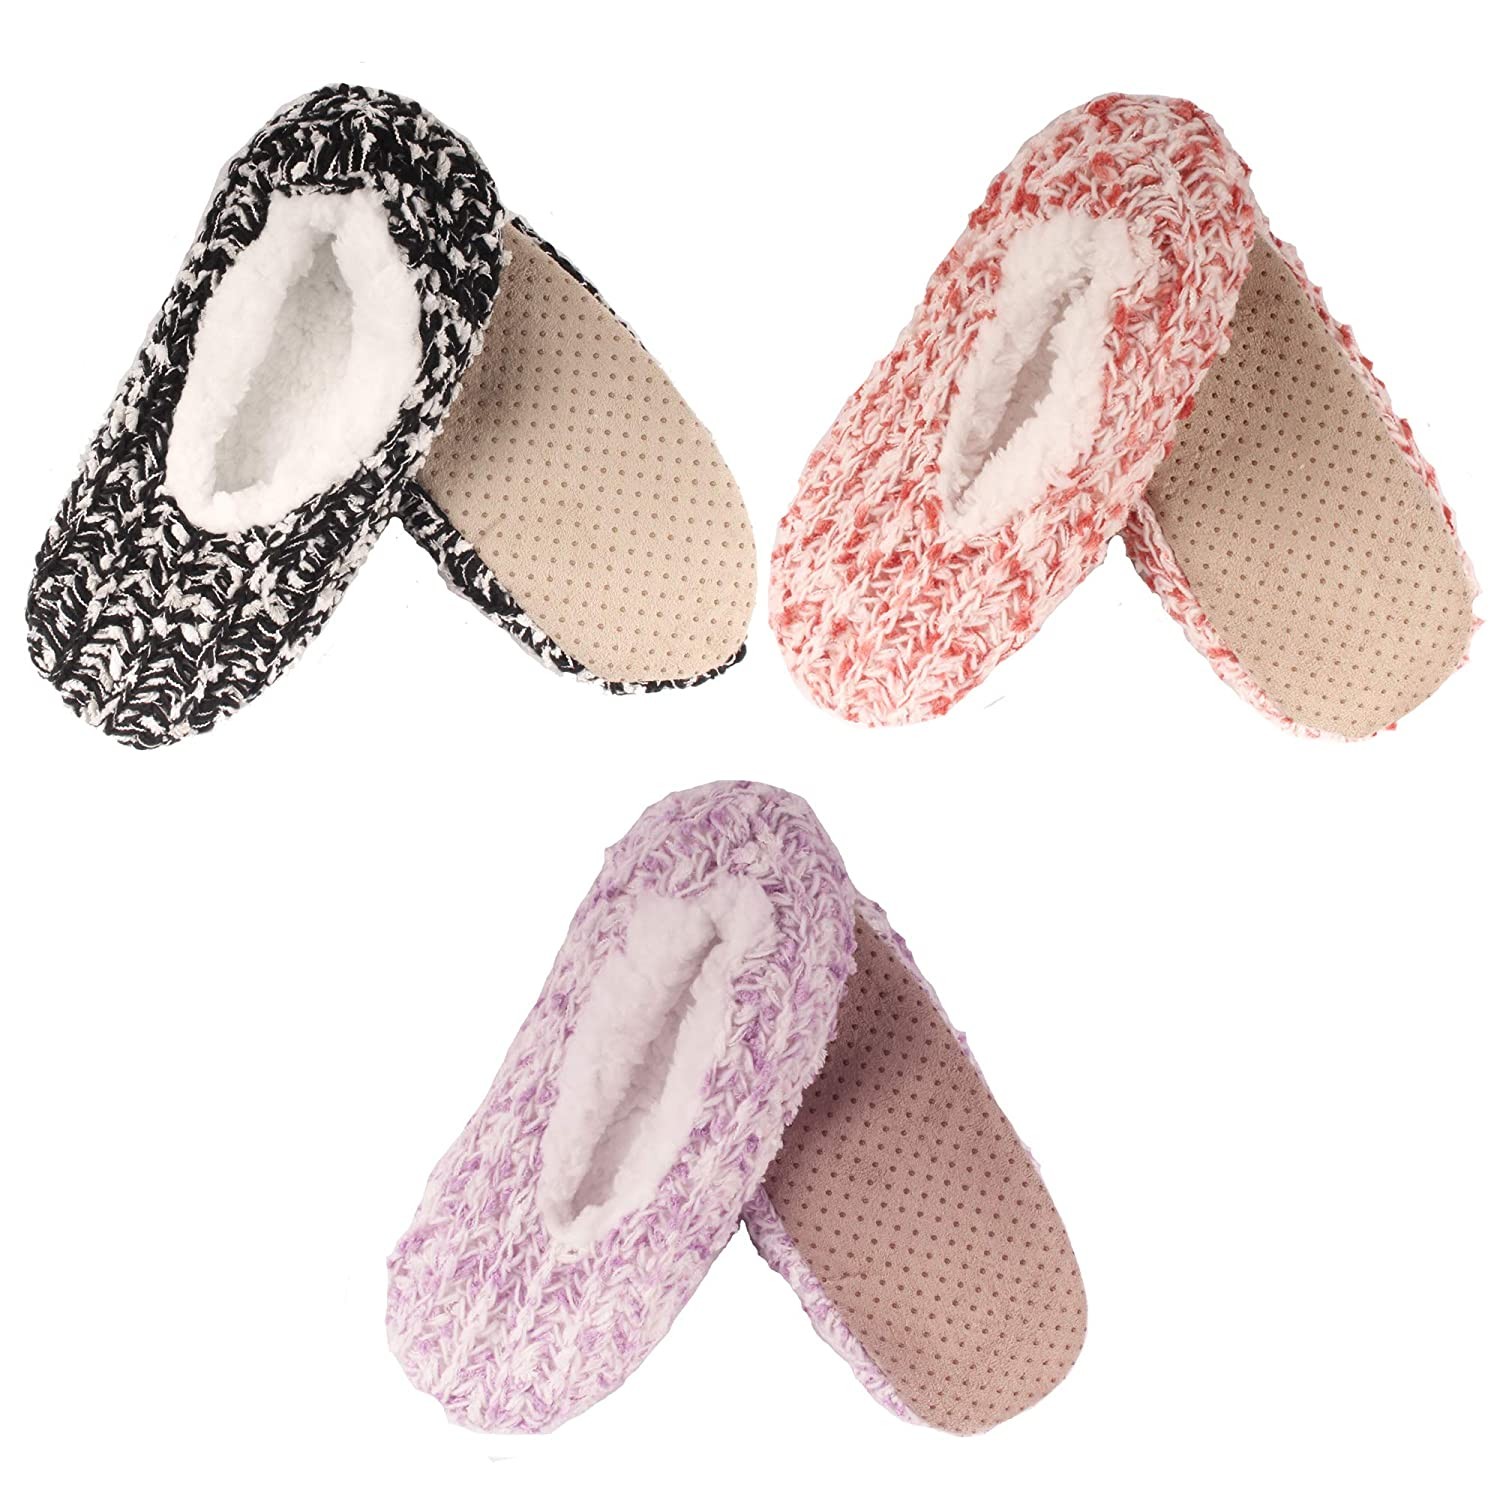 Assortment 3a BambooMN Women's Fuzzy Warm Comfort Cozy Fleece Lined Anti-Slip Slippers